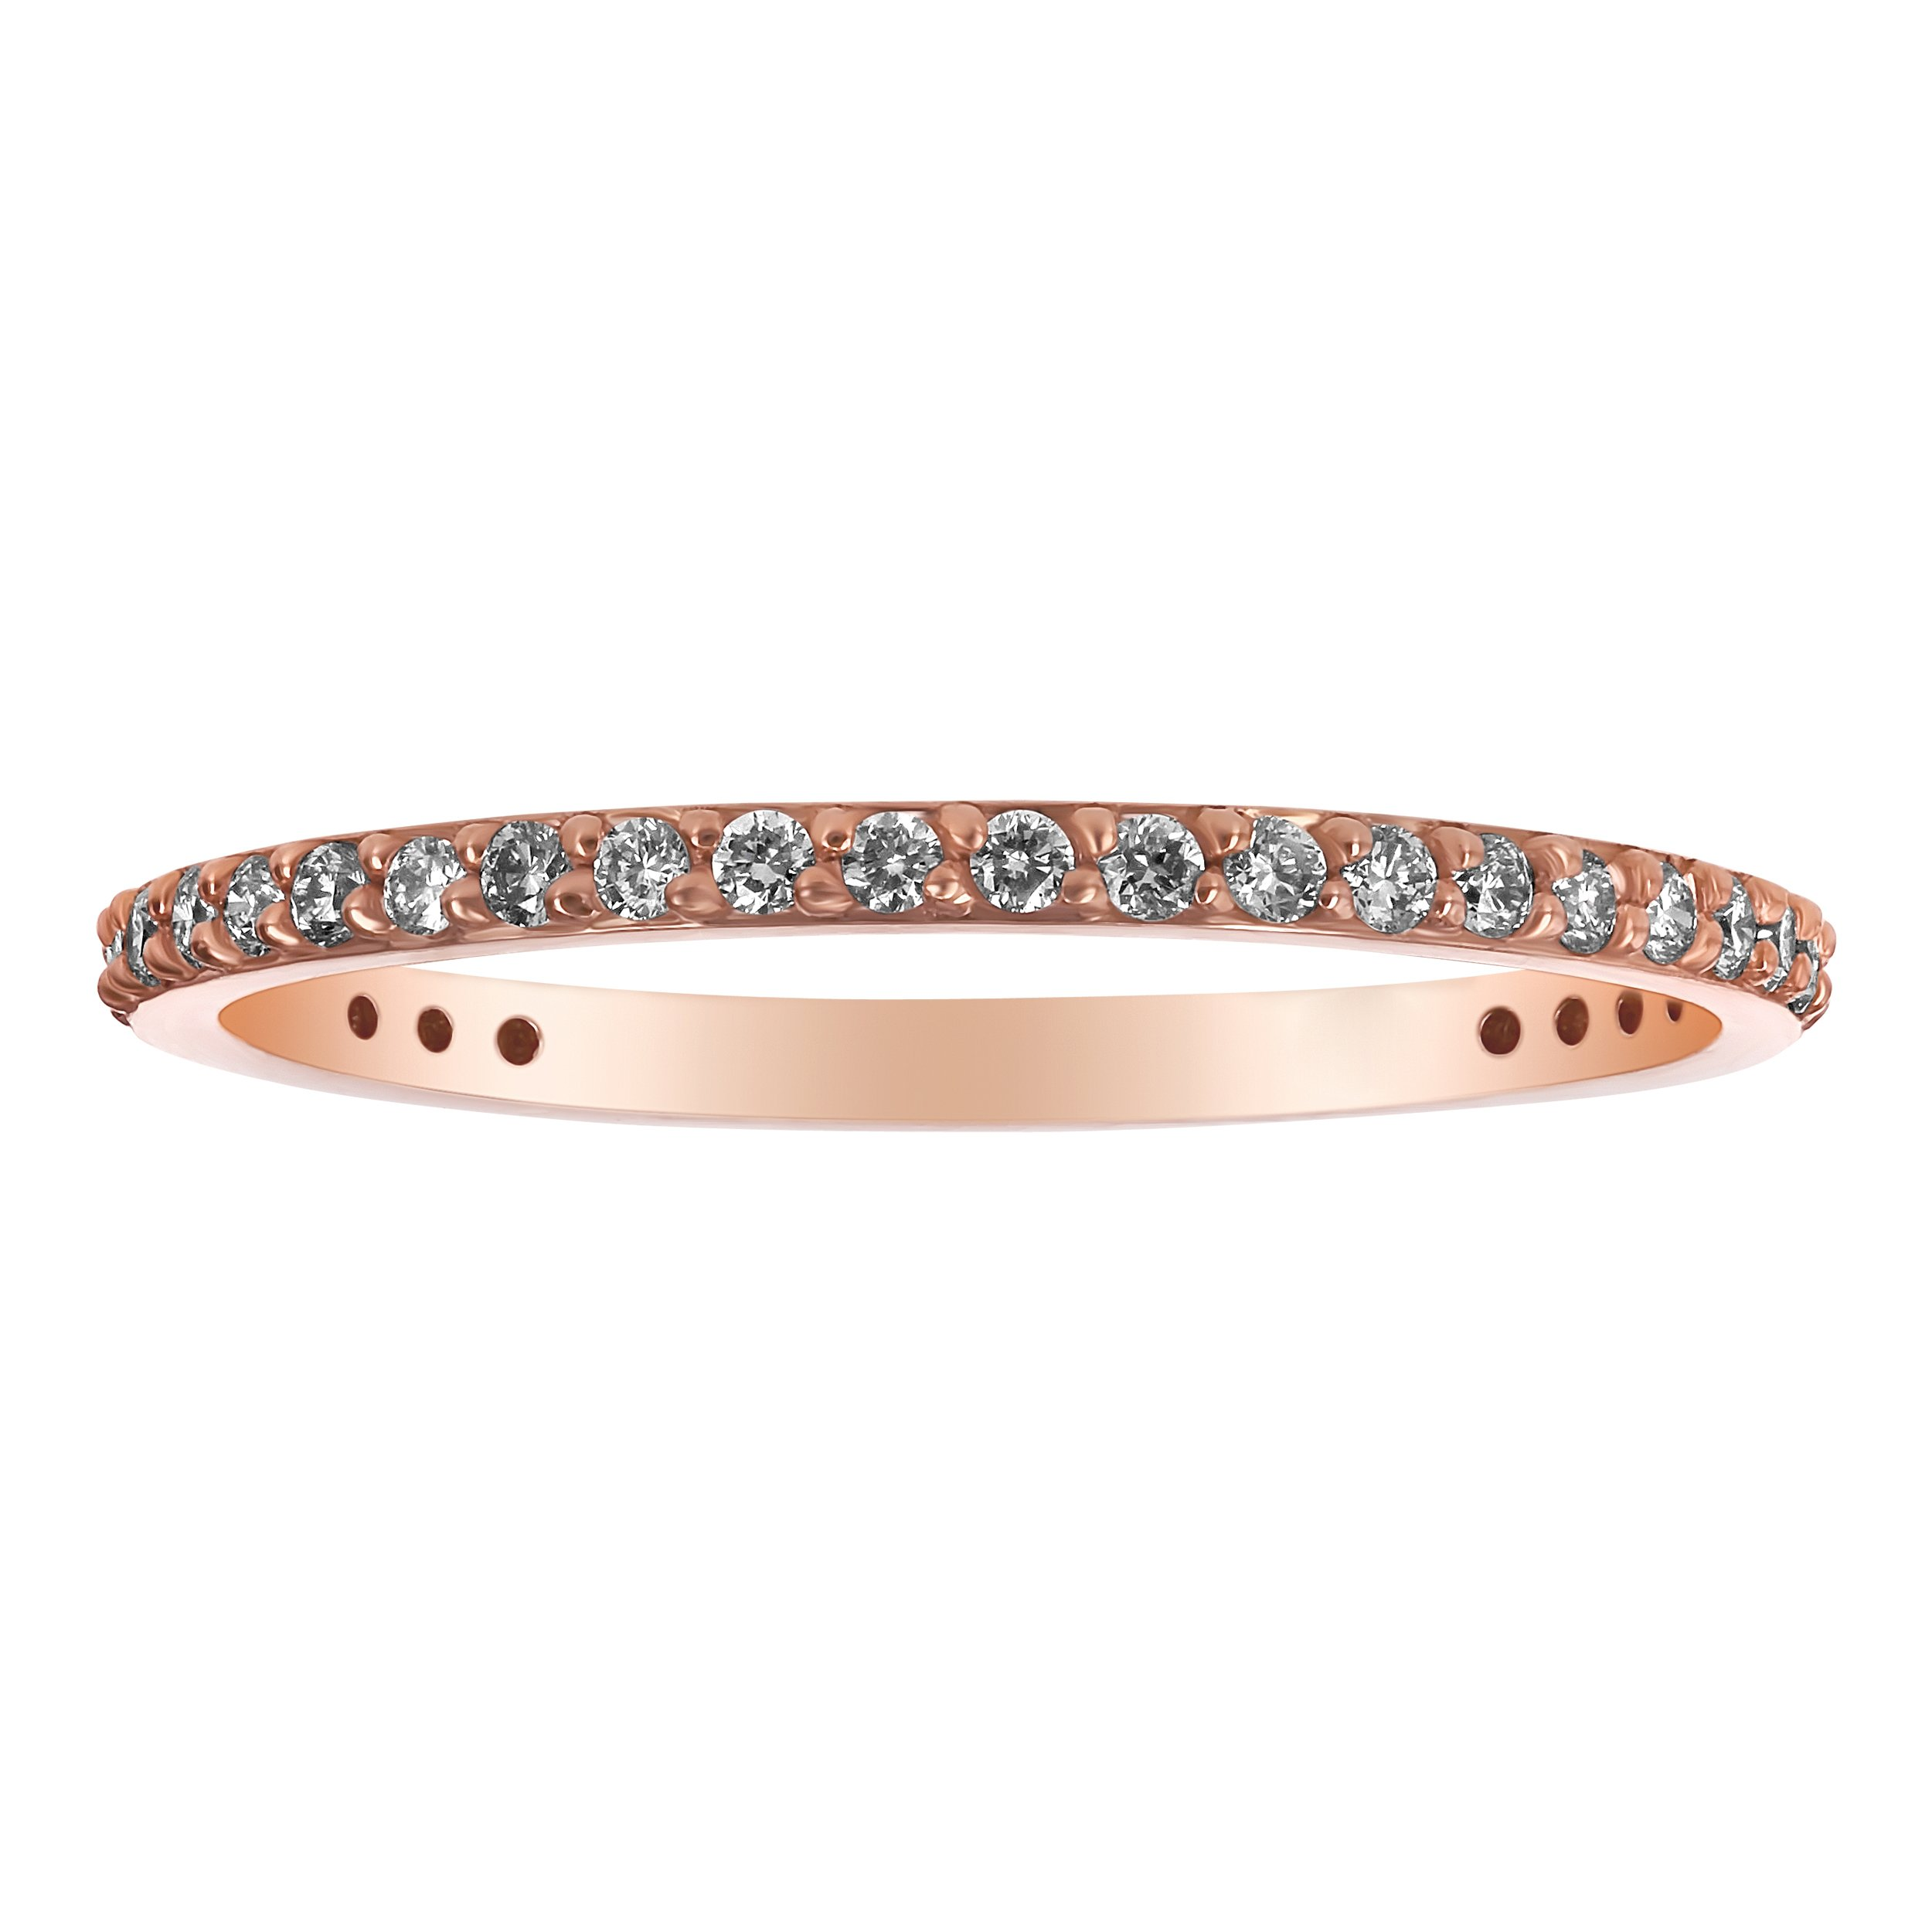 14k Rose Gold Diamond Wedding Stackable Band Ring (1/3 cttw, H-I Color, I1 Clarity) Size 7